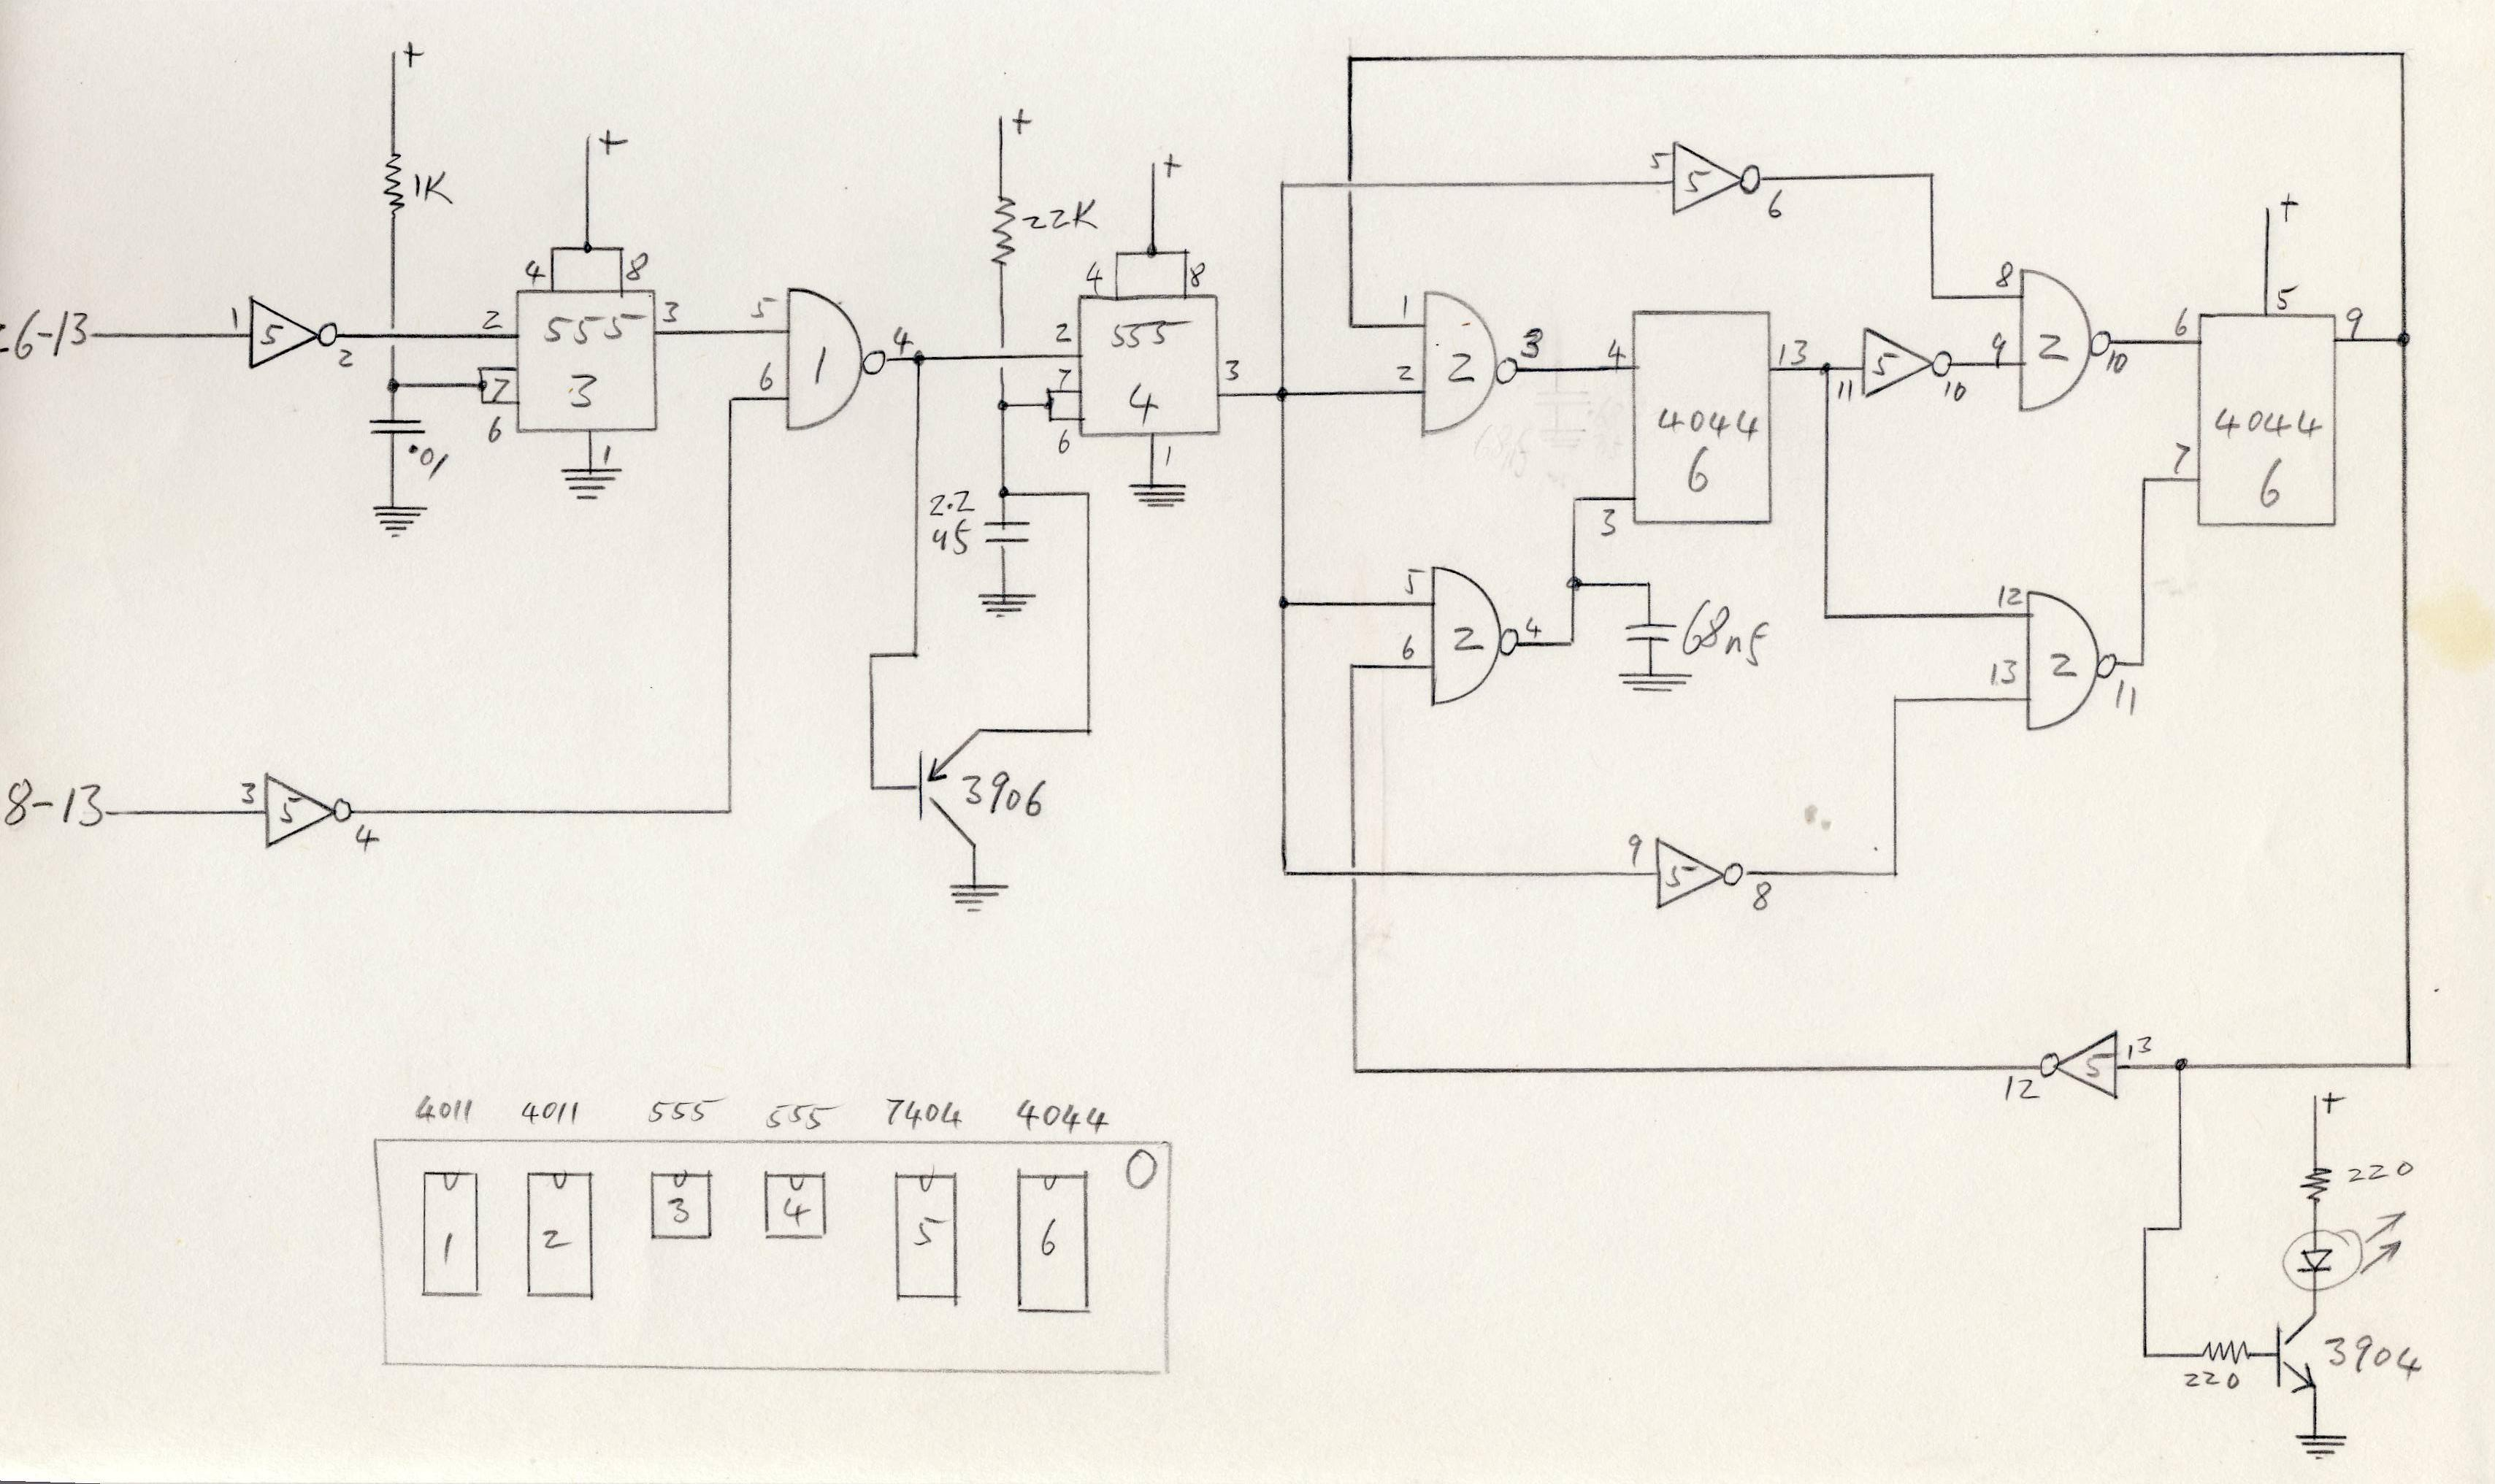 Untitled Document Rs232 Schematic